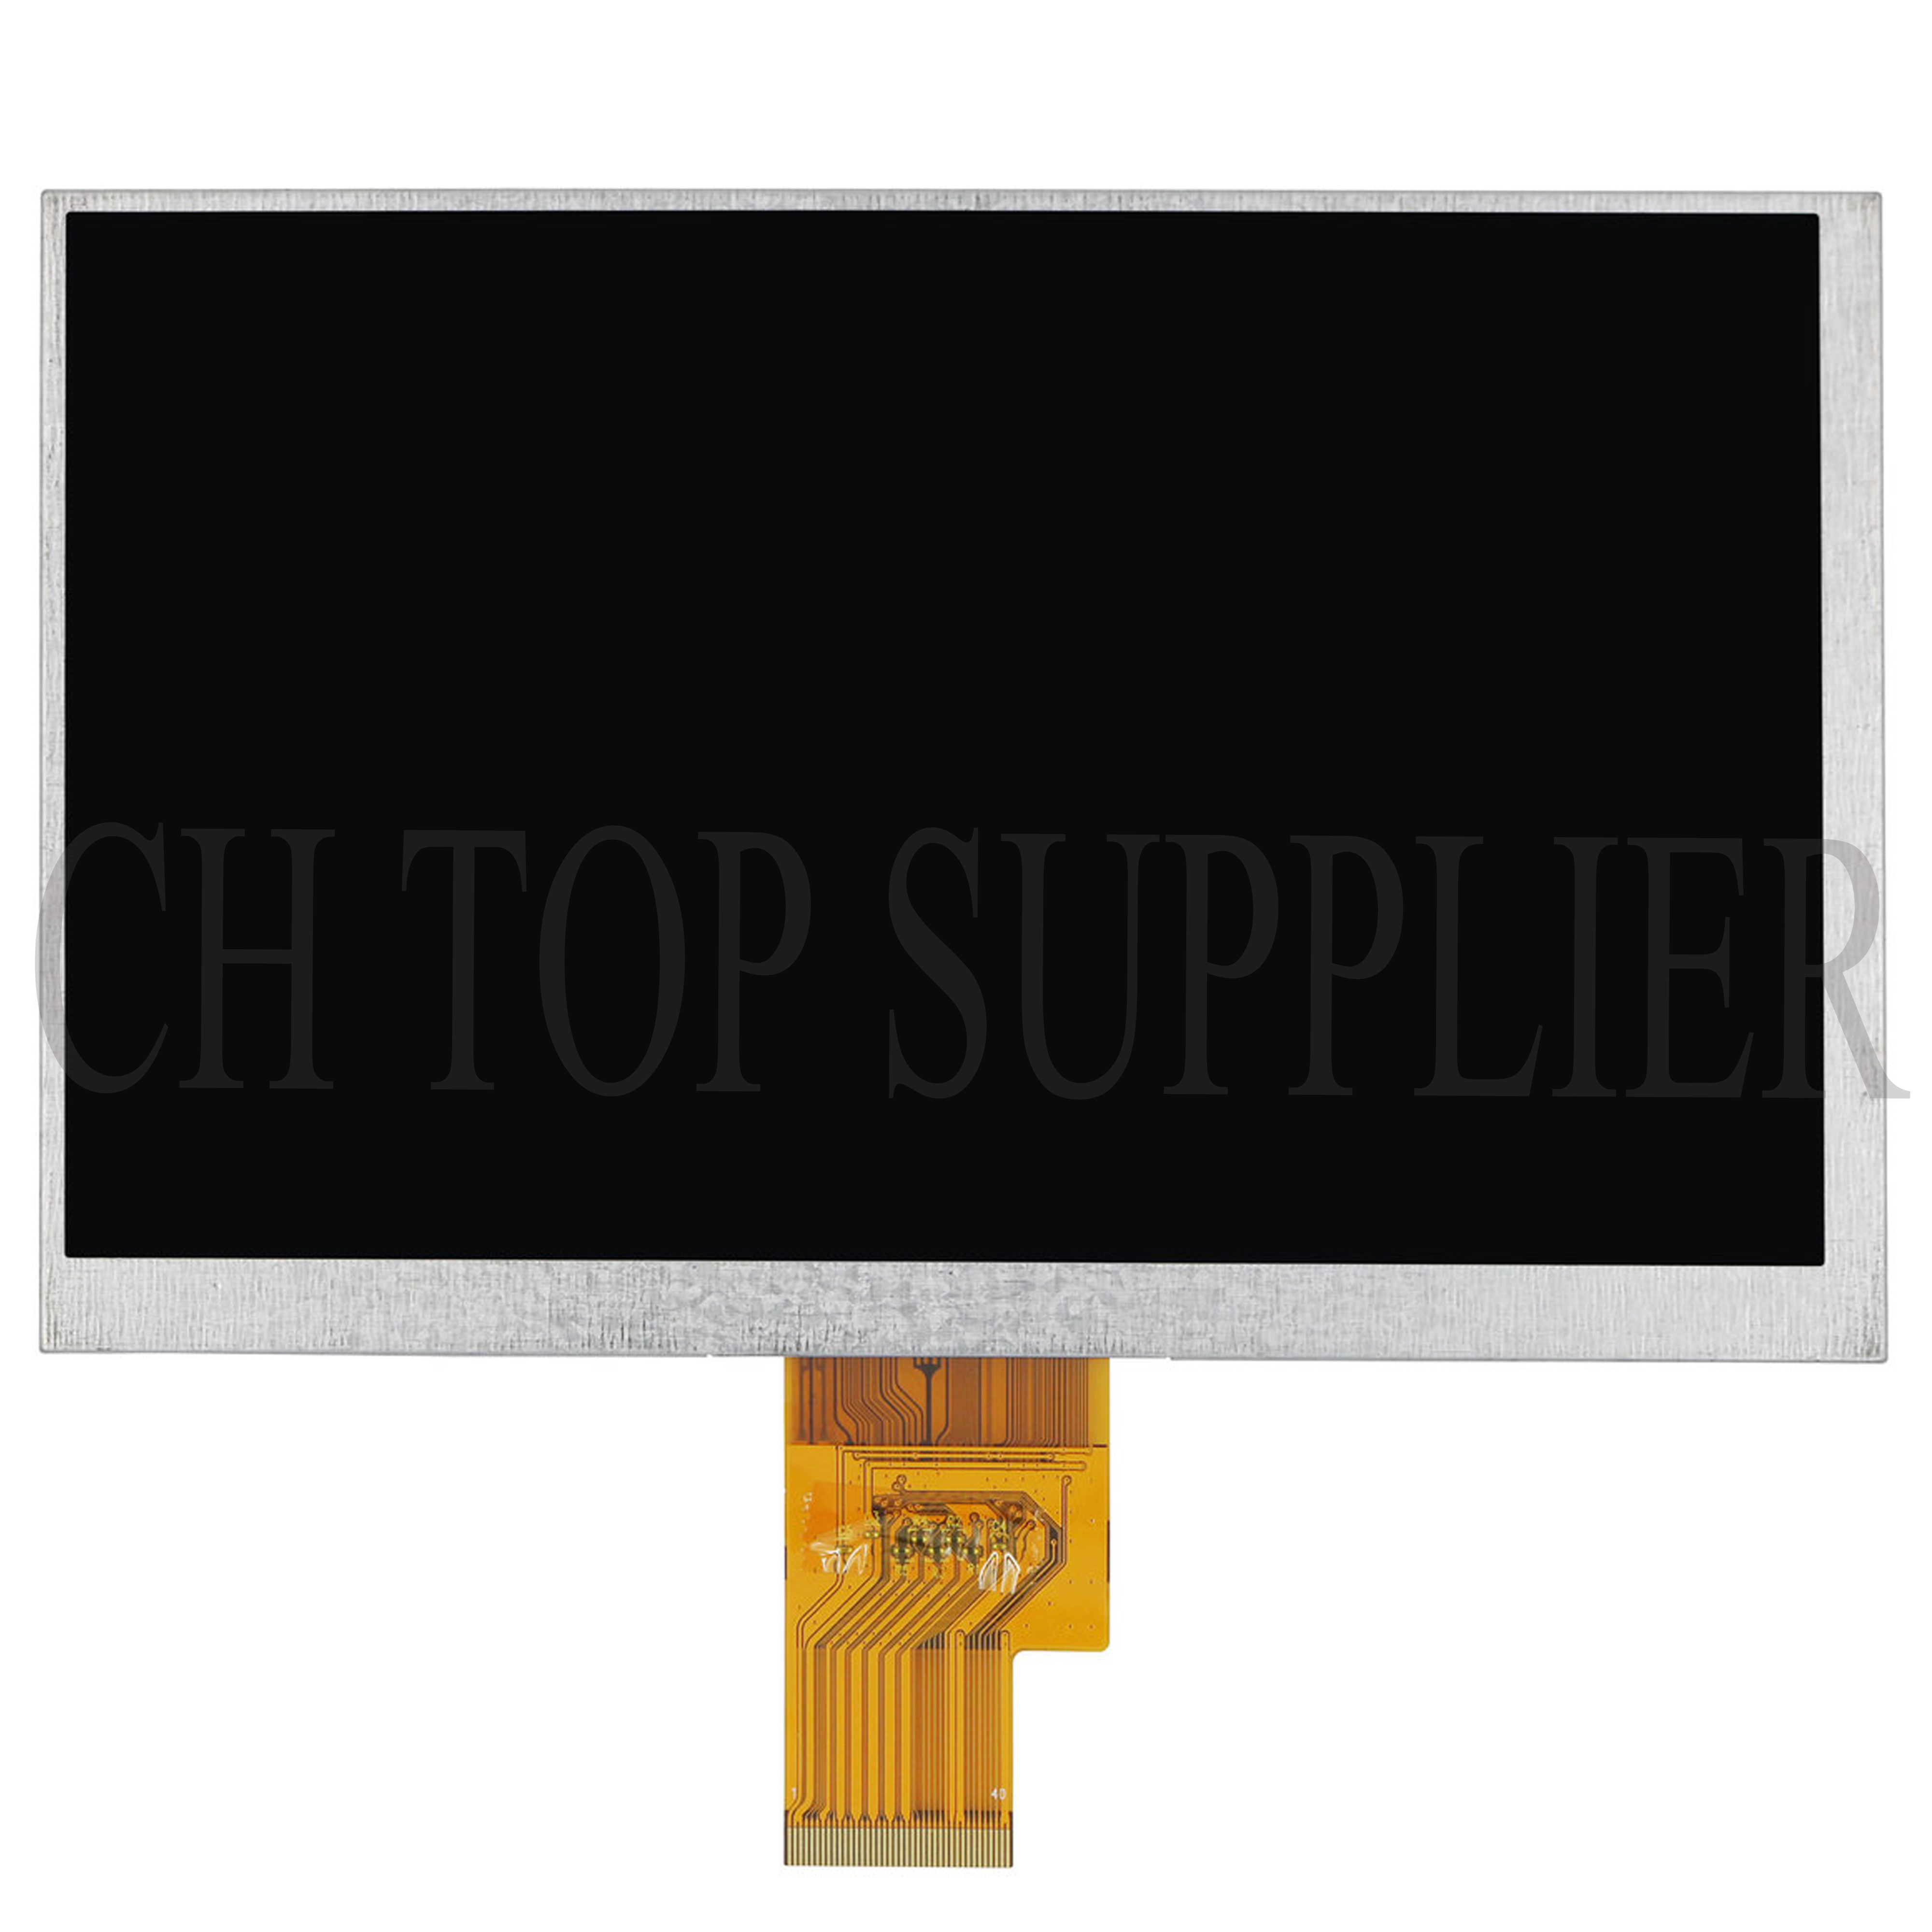 Original 7inch LCD screen CLAA070NQ01 XN for HP slate 7 tablet pc dedicated 1024 * 600 IPS free shipping free shipping original 9 inch lcd screen cable numbers kr090lb3s 1030300647 40pin